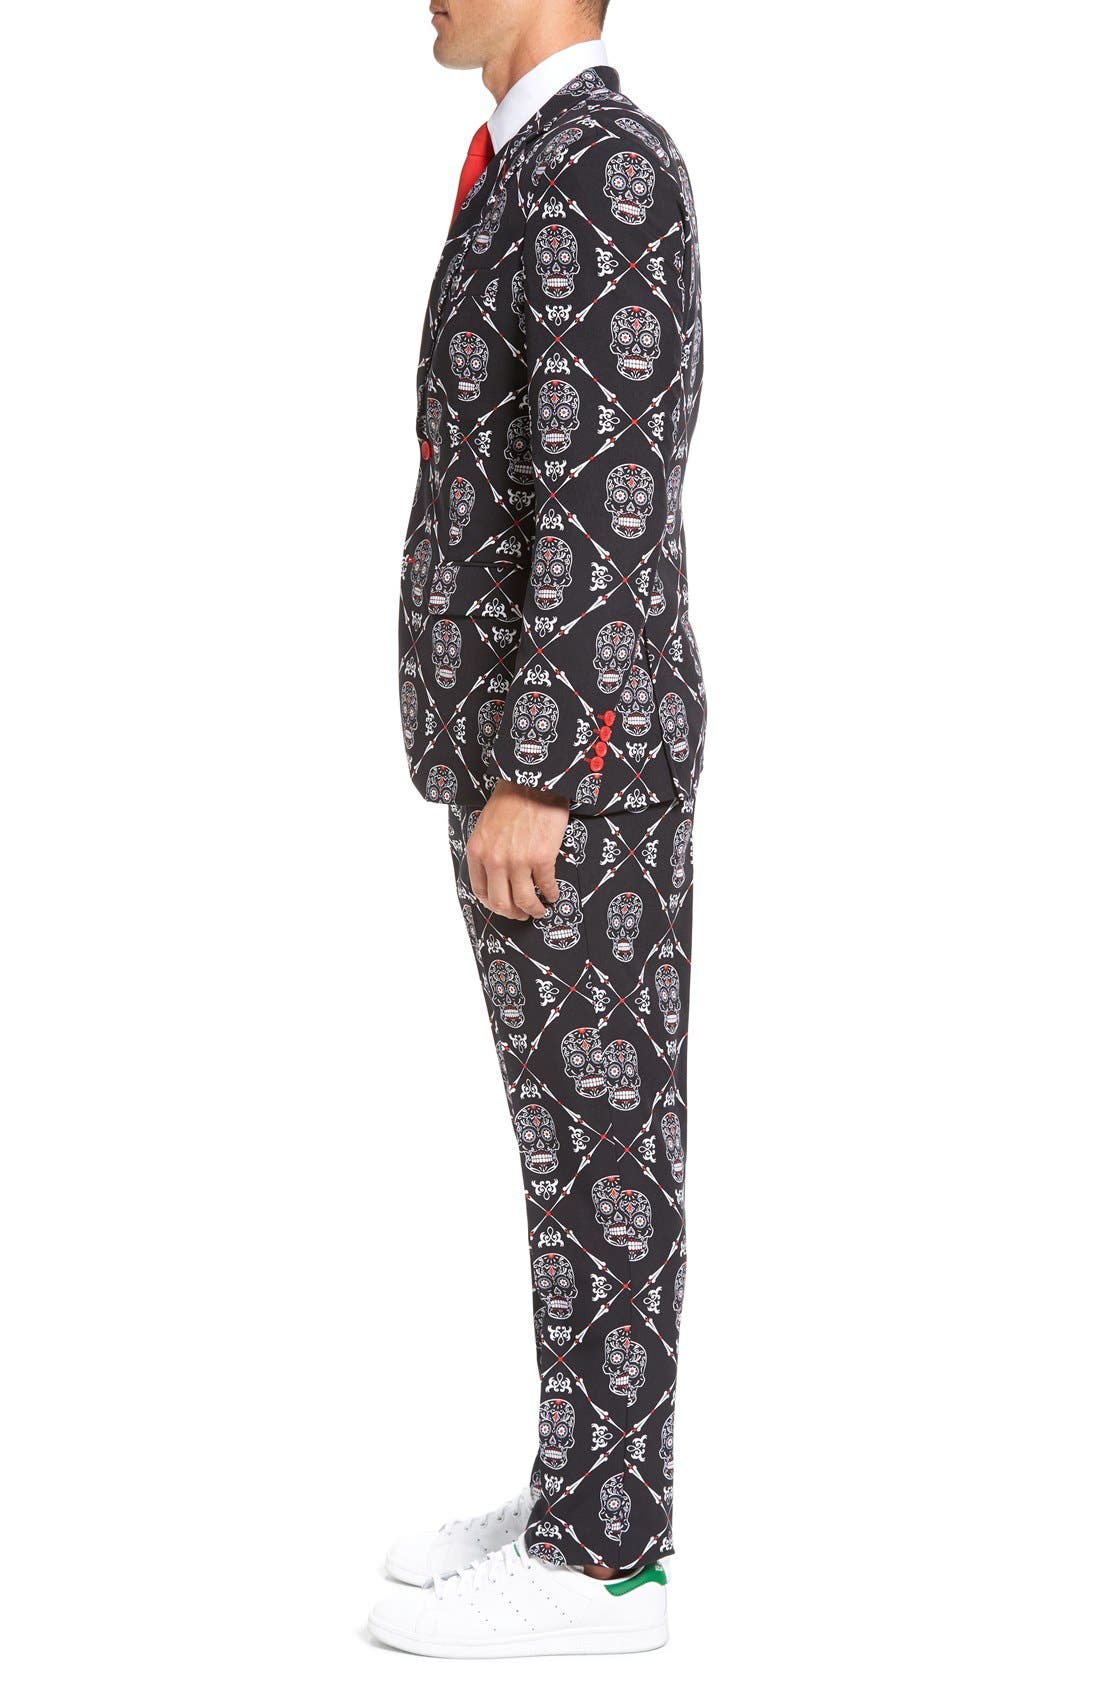 Alternate Image 3  - OppoSuits 'Haunting Hombre' Trim Fit Suit with Tie